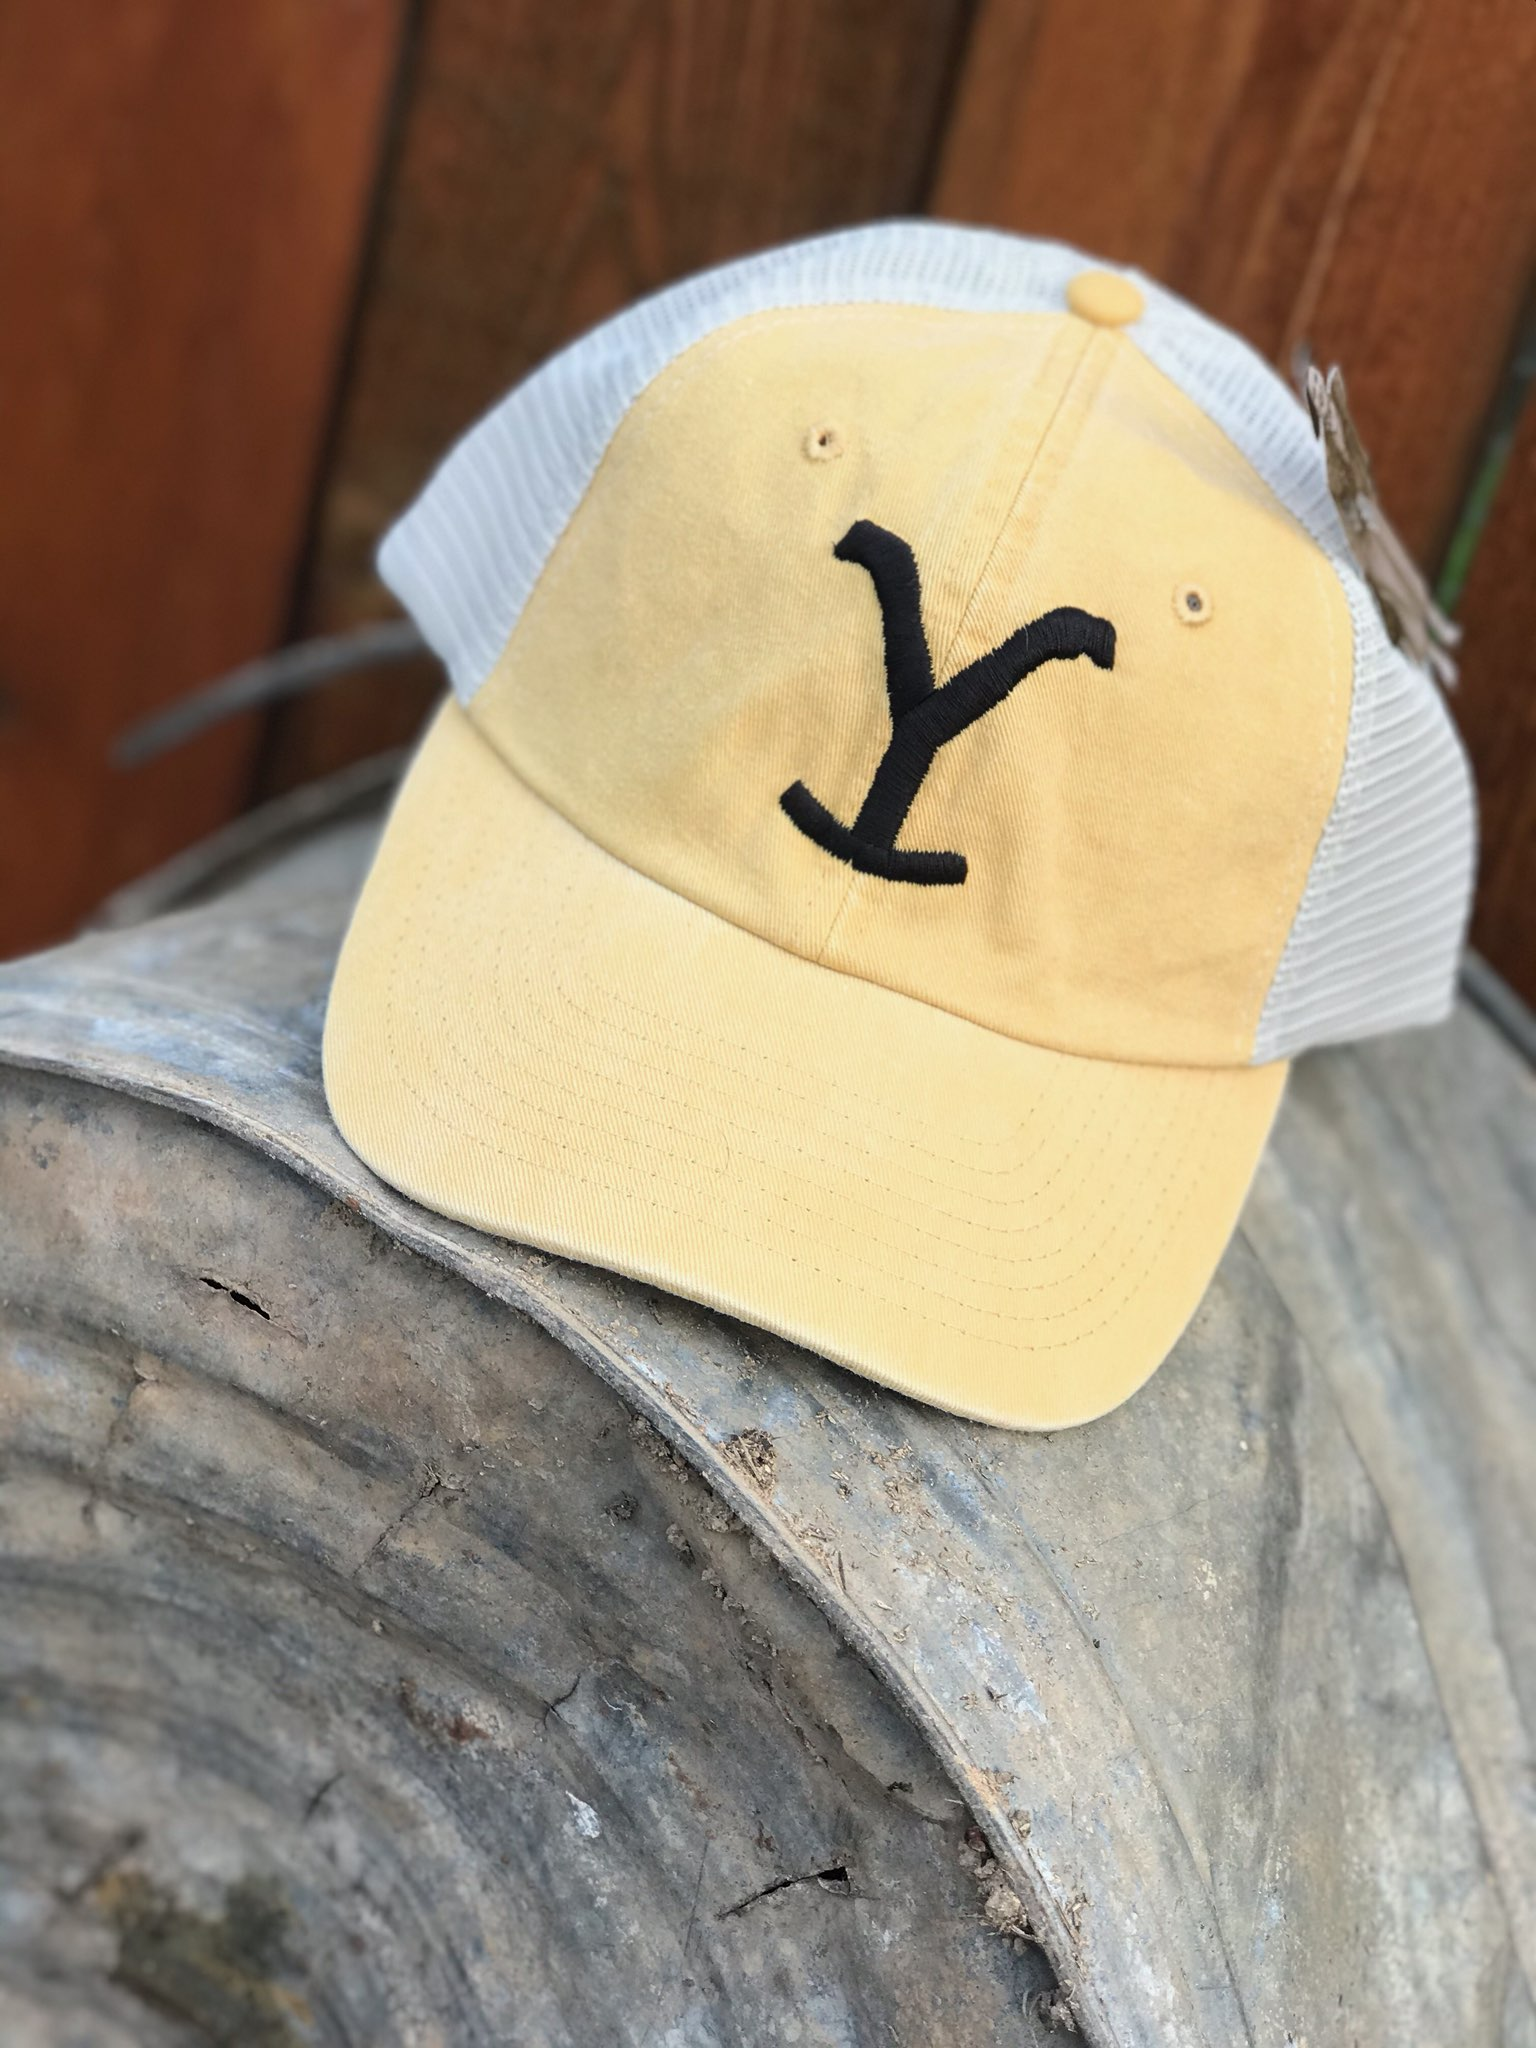 Yellowstone relaxed fit cap